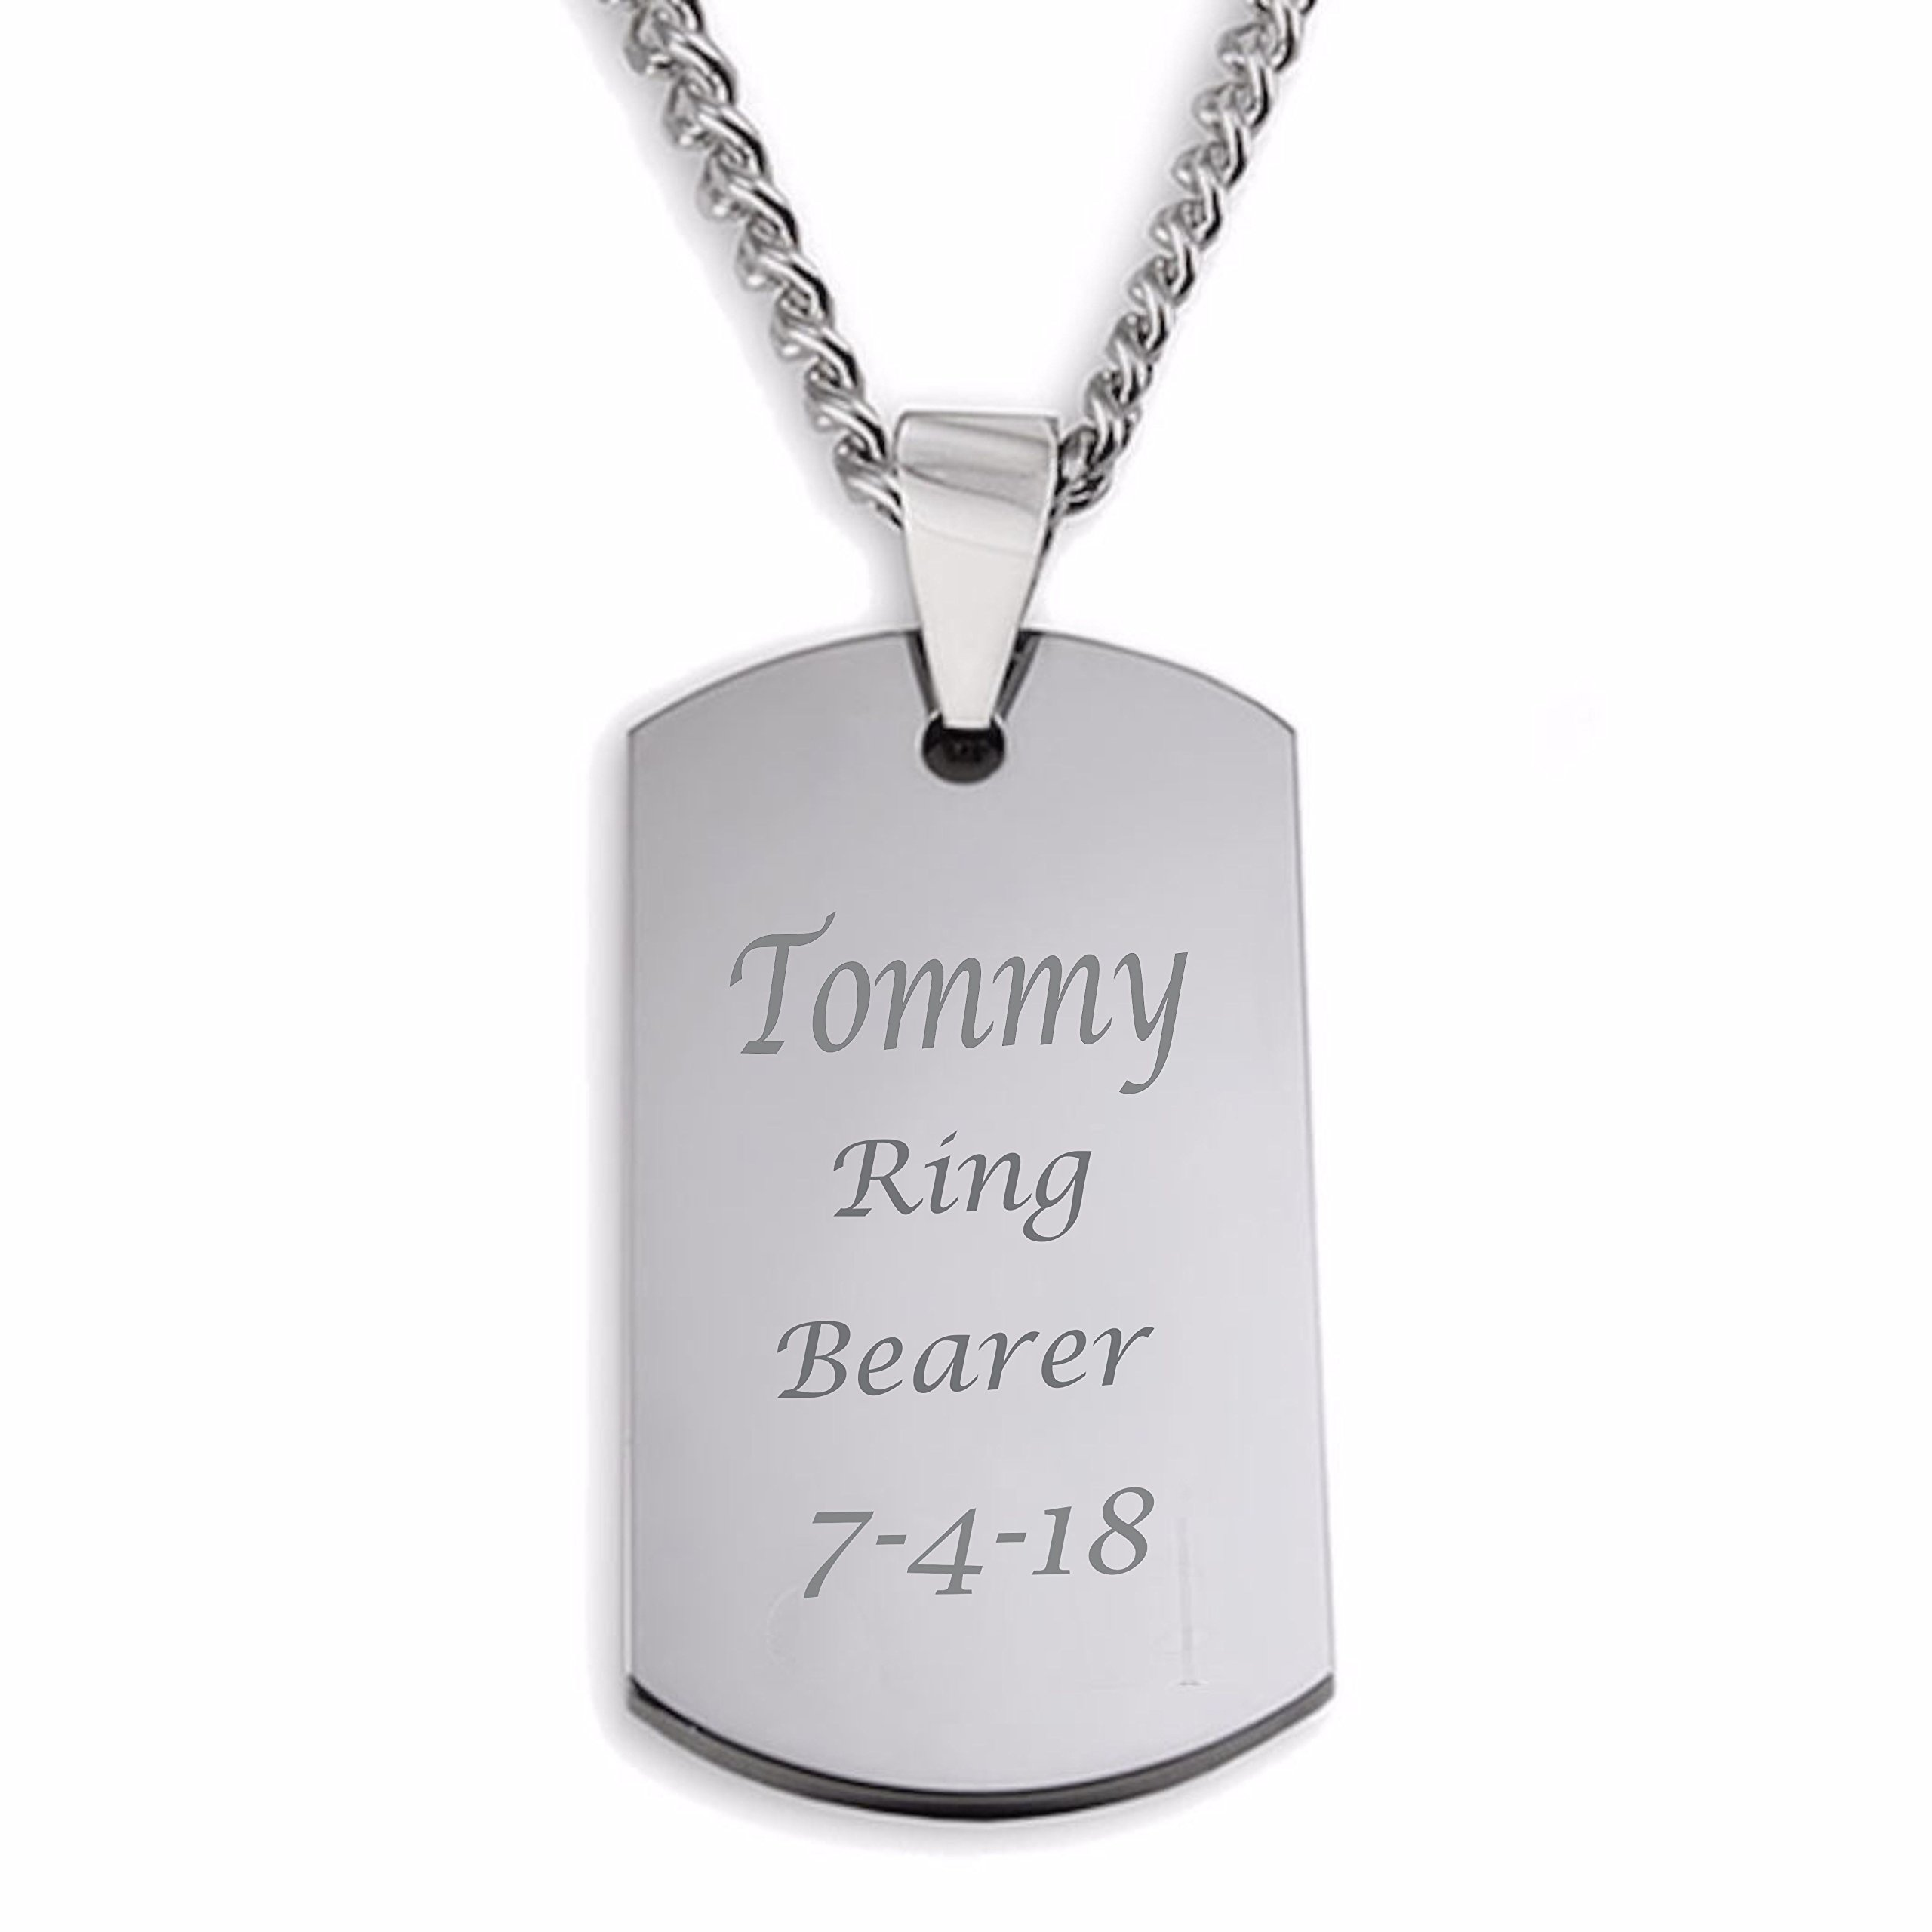 Personalized Small Stainless Steel Dog Tag Necklace